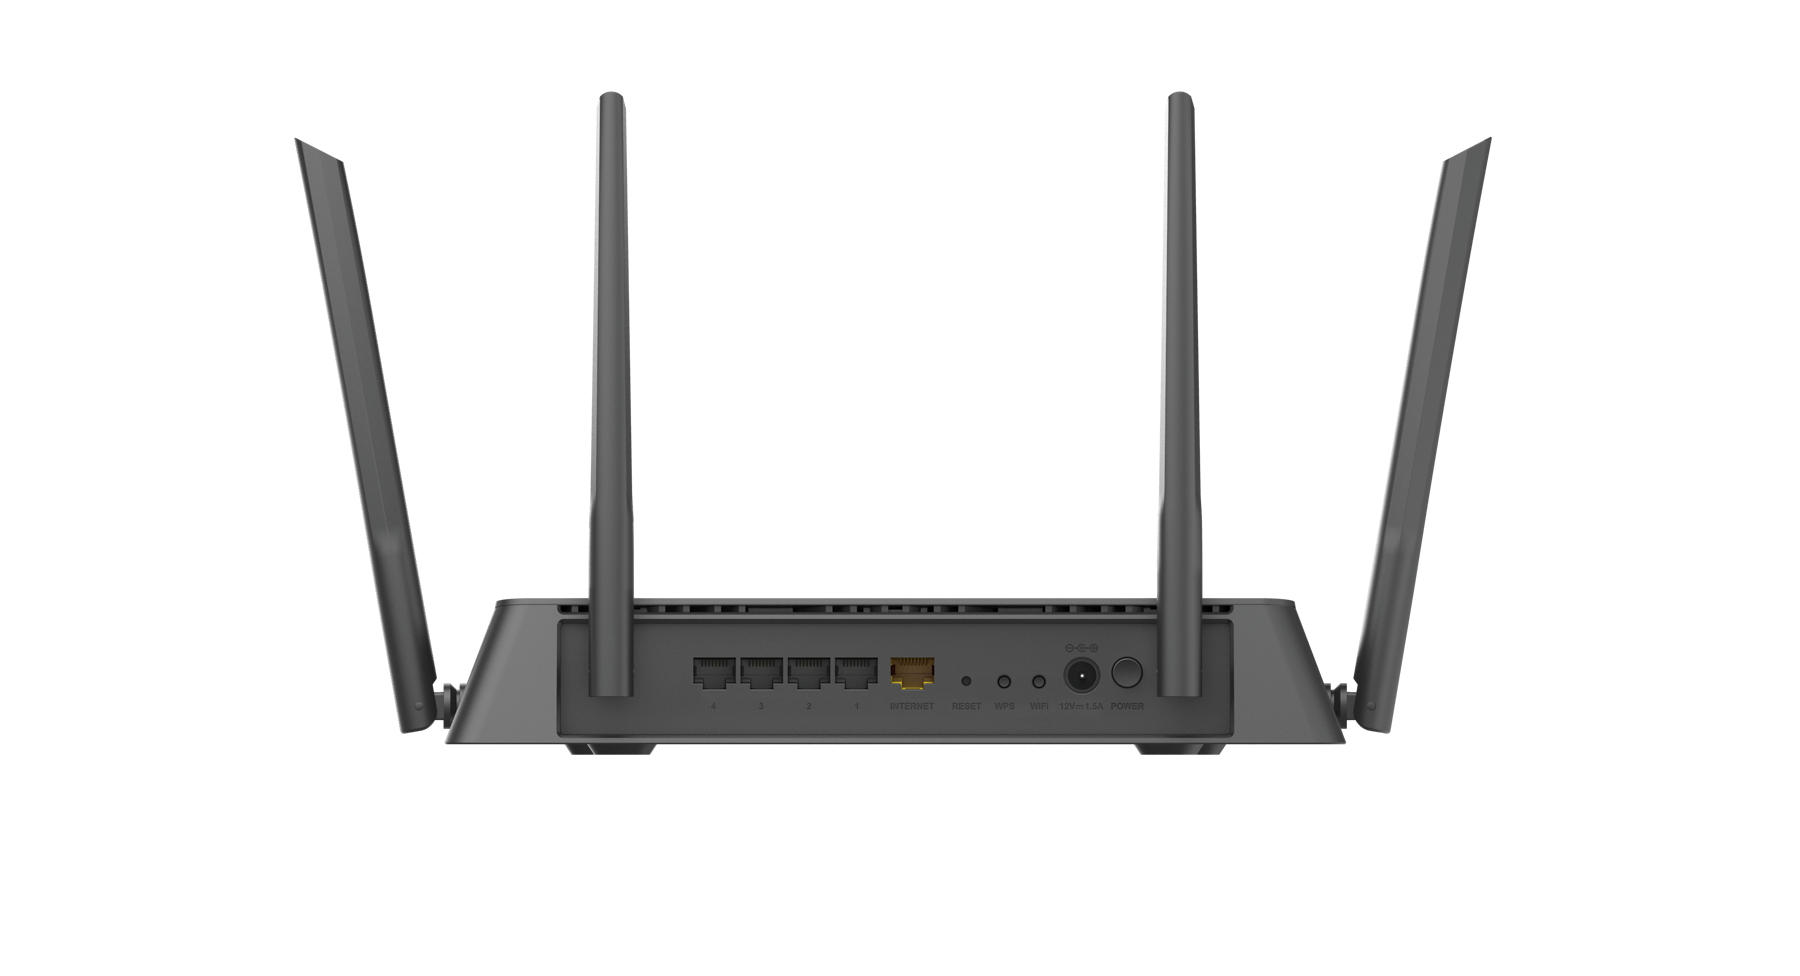 DIR-878 Wireless router (4-poort switch, GBLAN, 802.11a/b/g/n/ac, dual band)